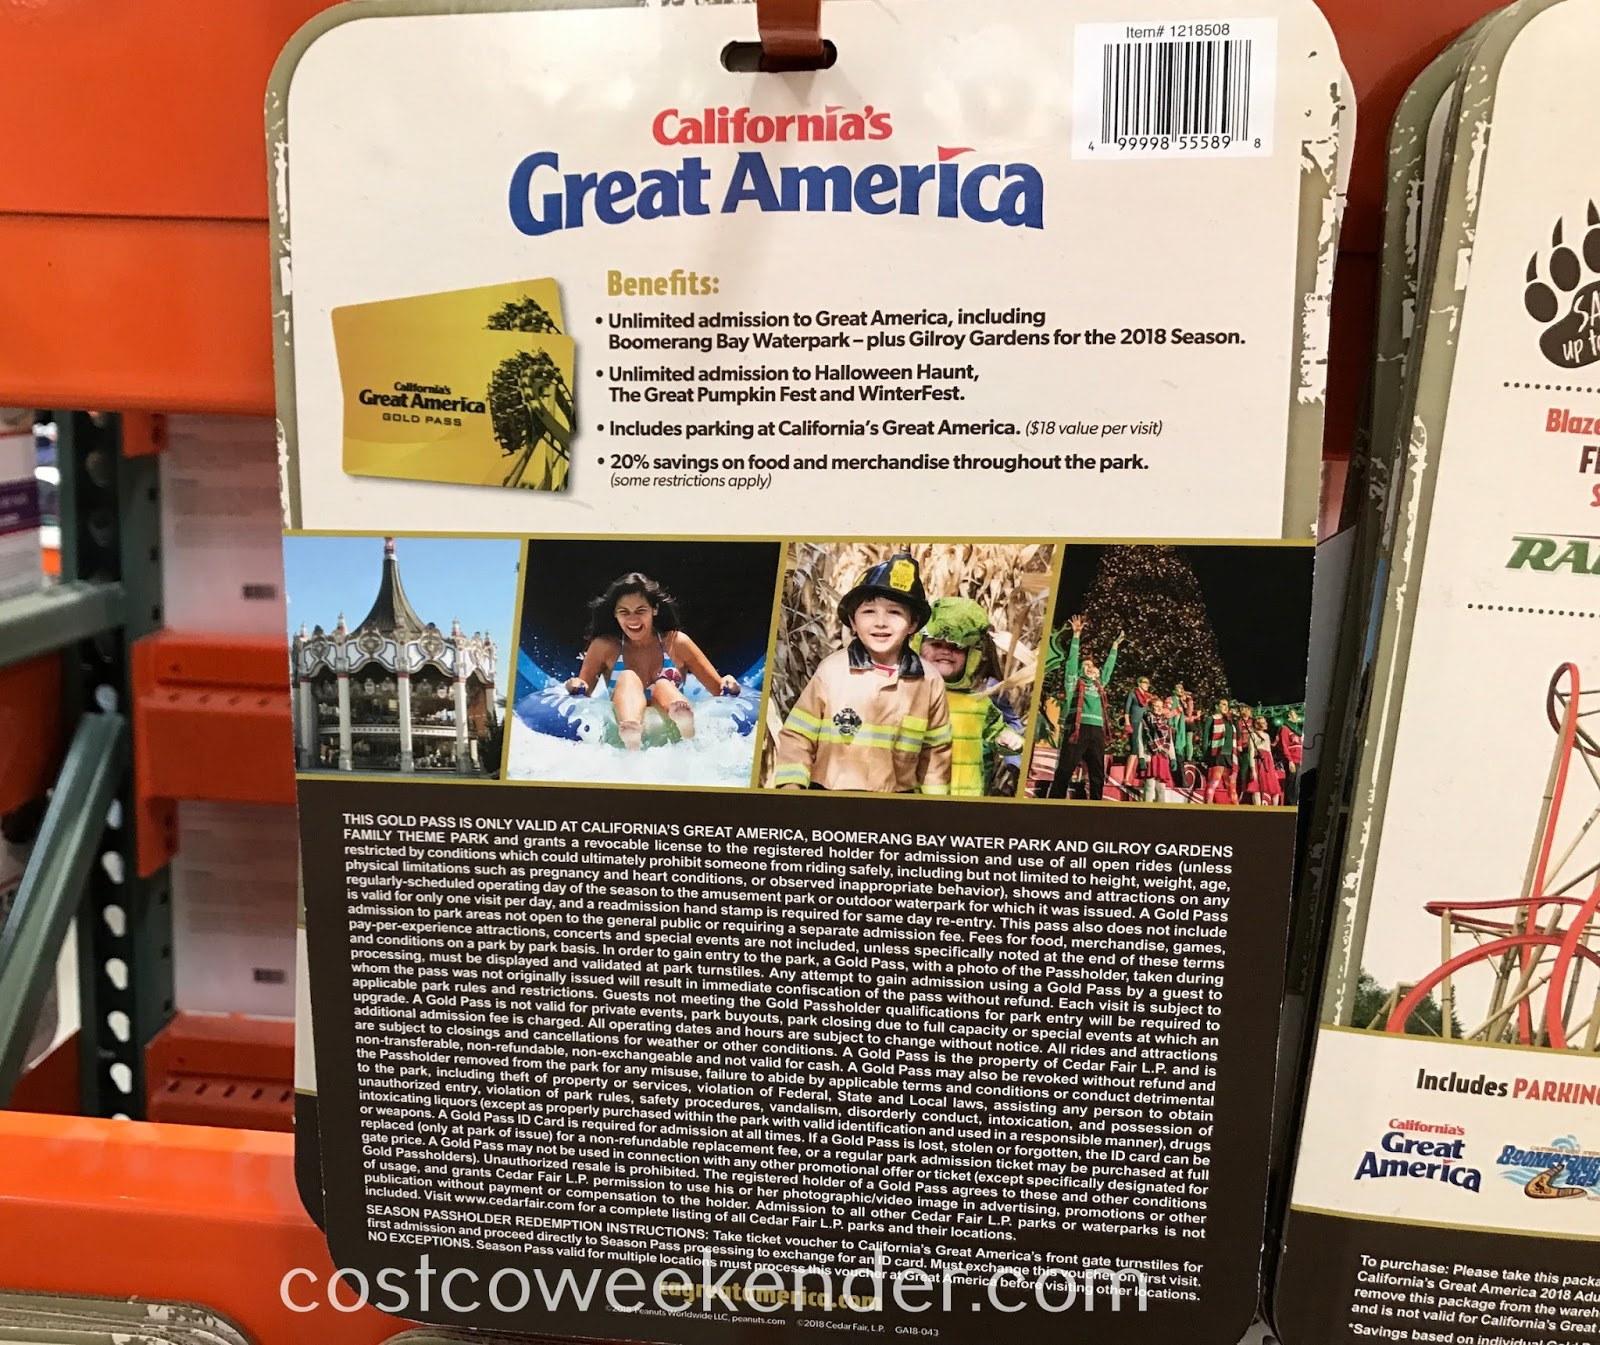 Costco 1218508 - California's Great America: summer fun for the whole family